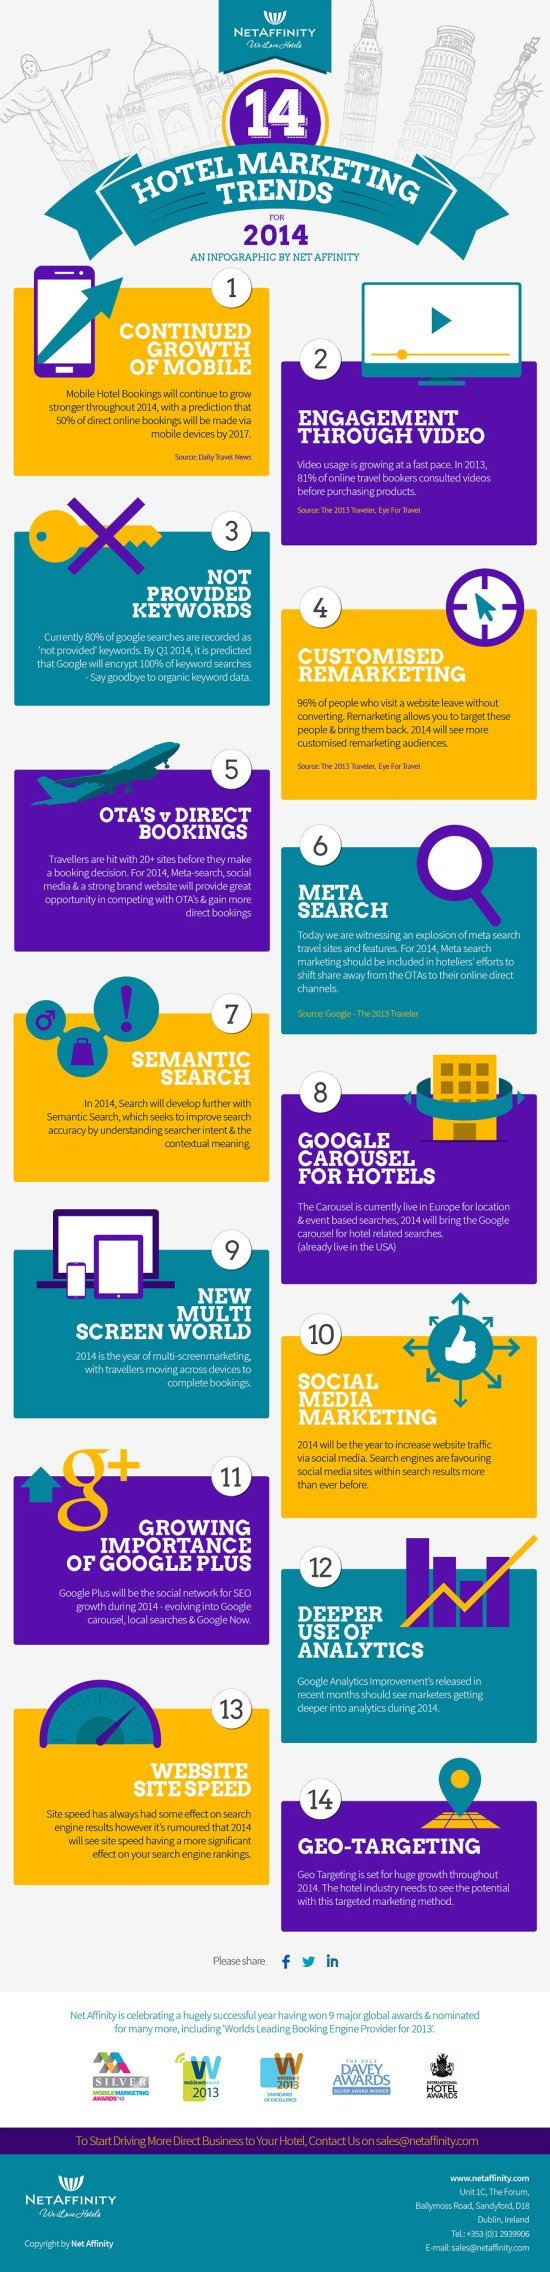 14 digital marketing trends for hotels in 2014